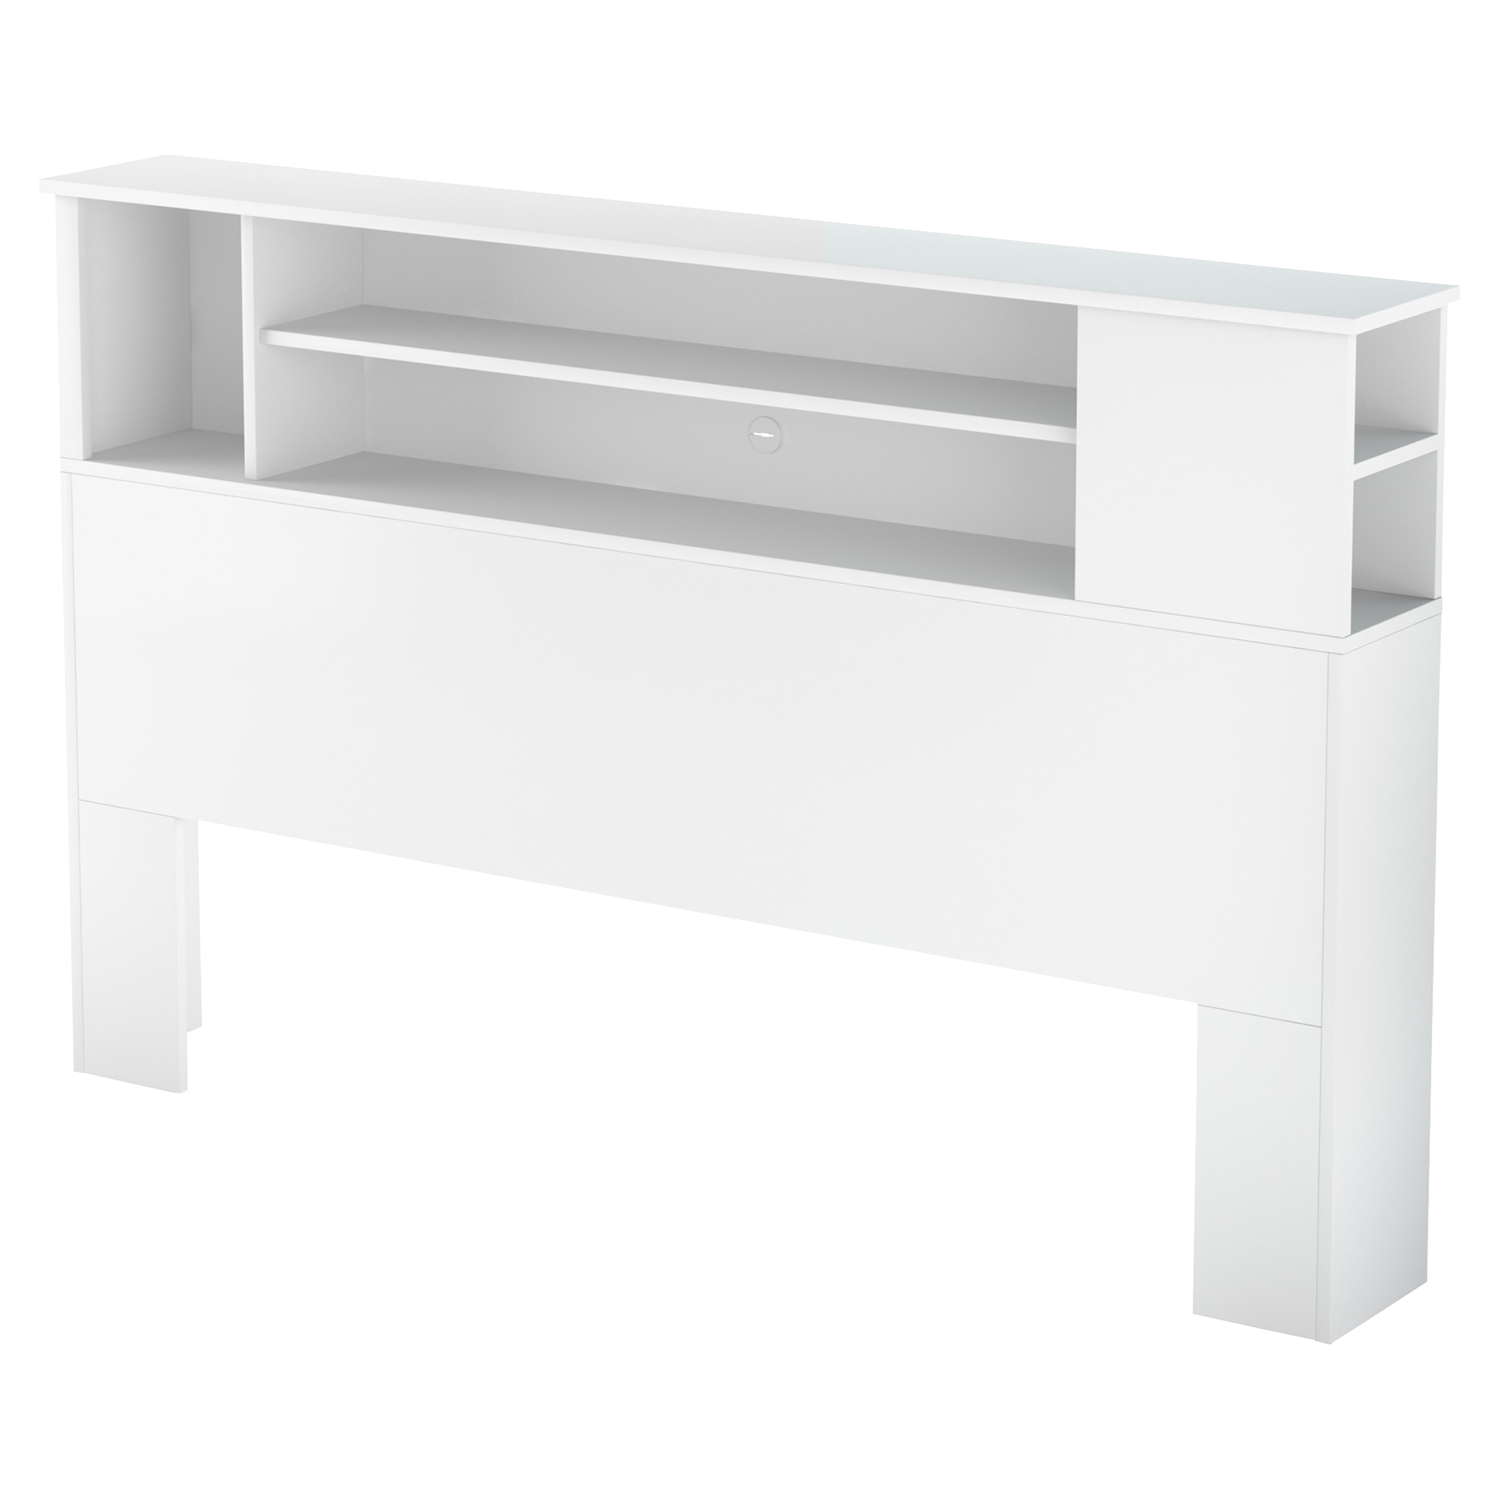 Fusion Full/Queen Bookcase Headboard - Pure White - SS-9007A1